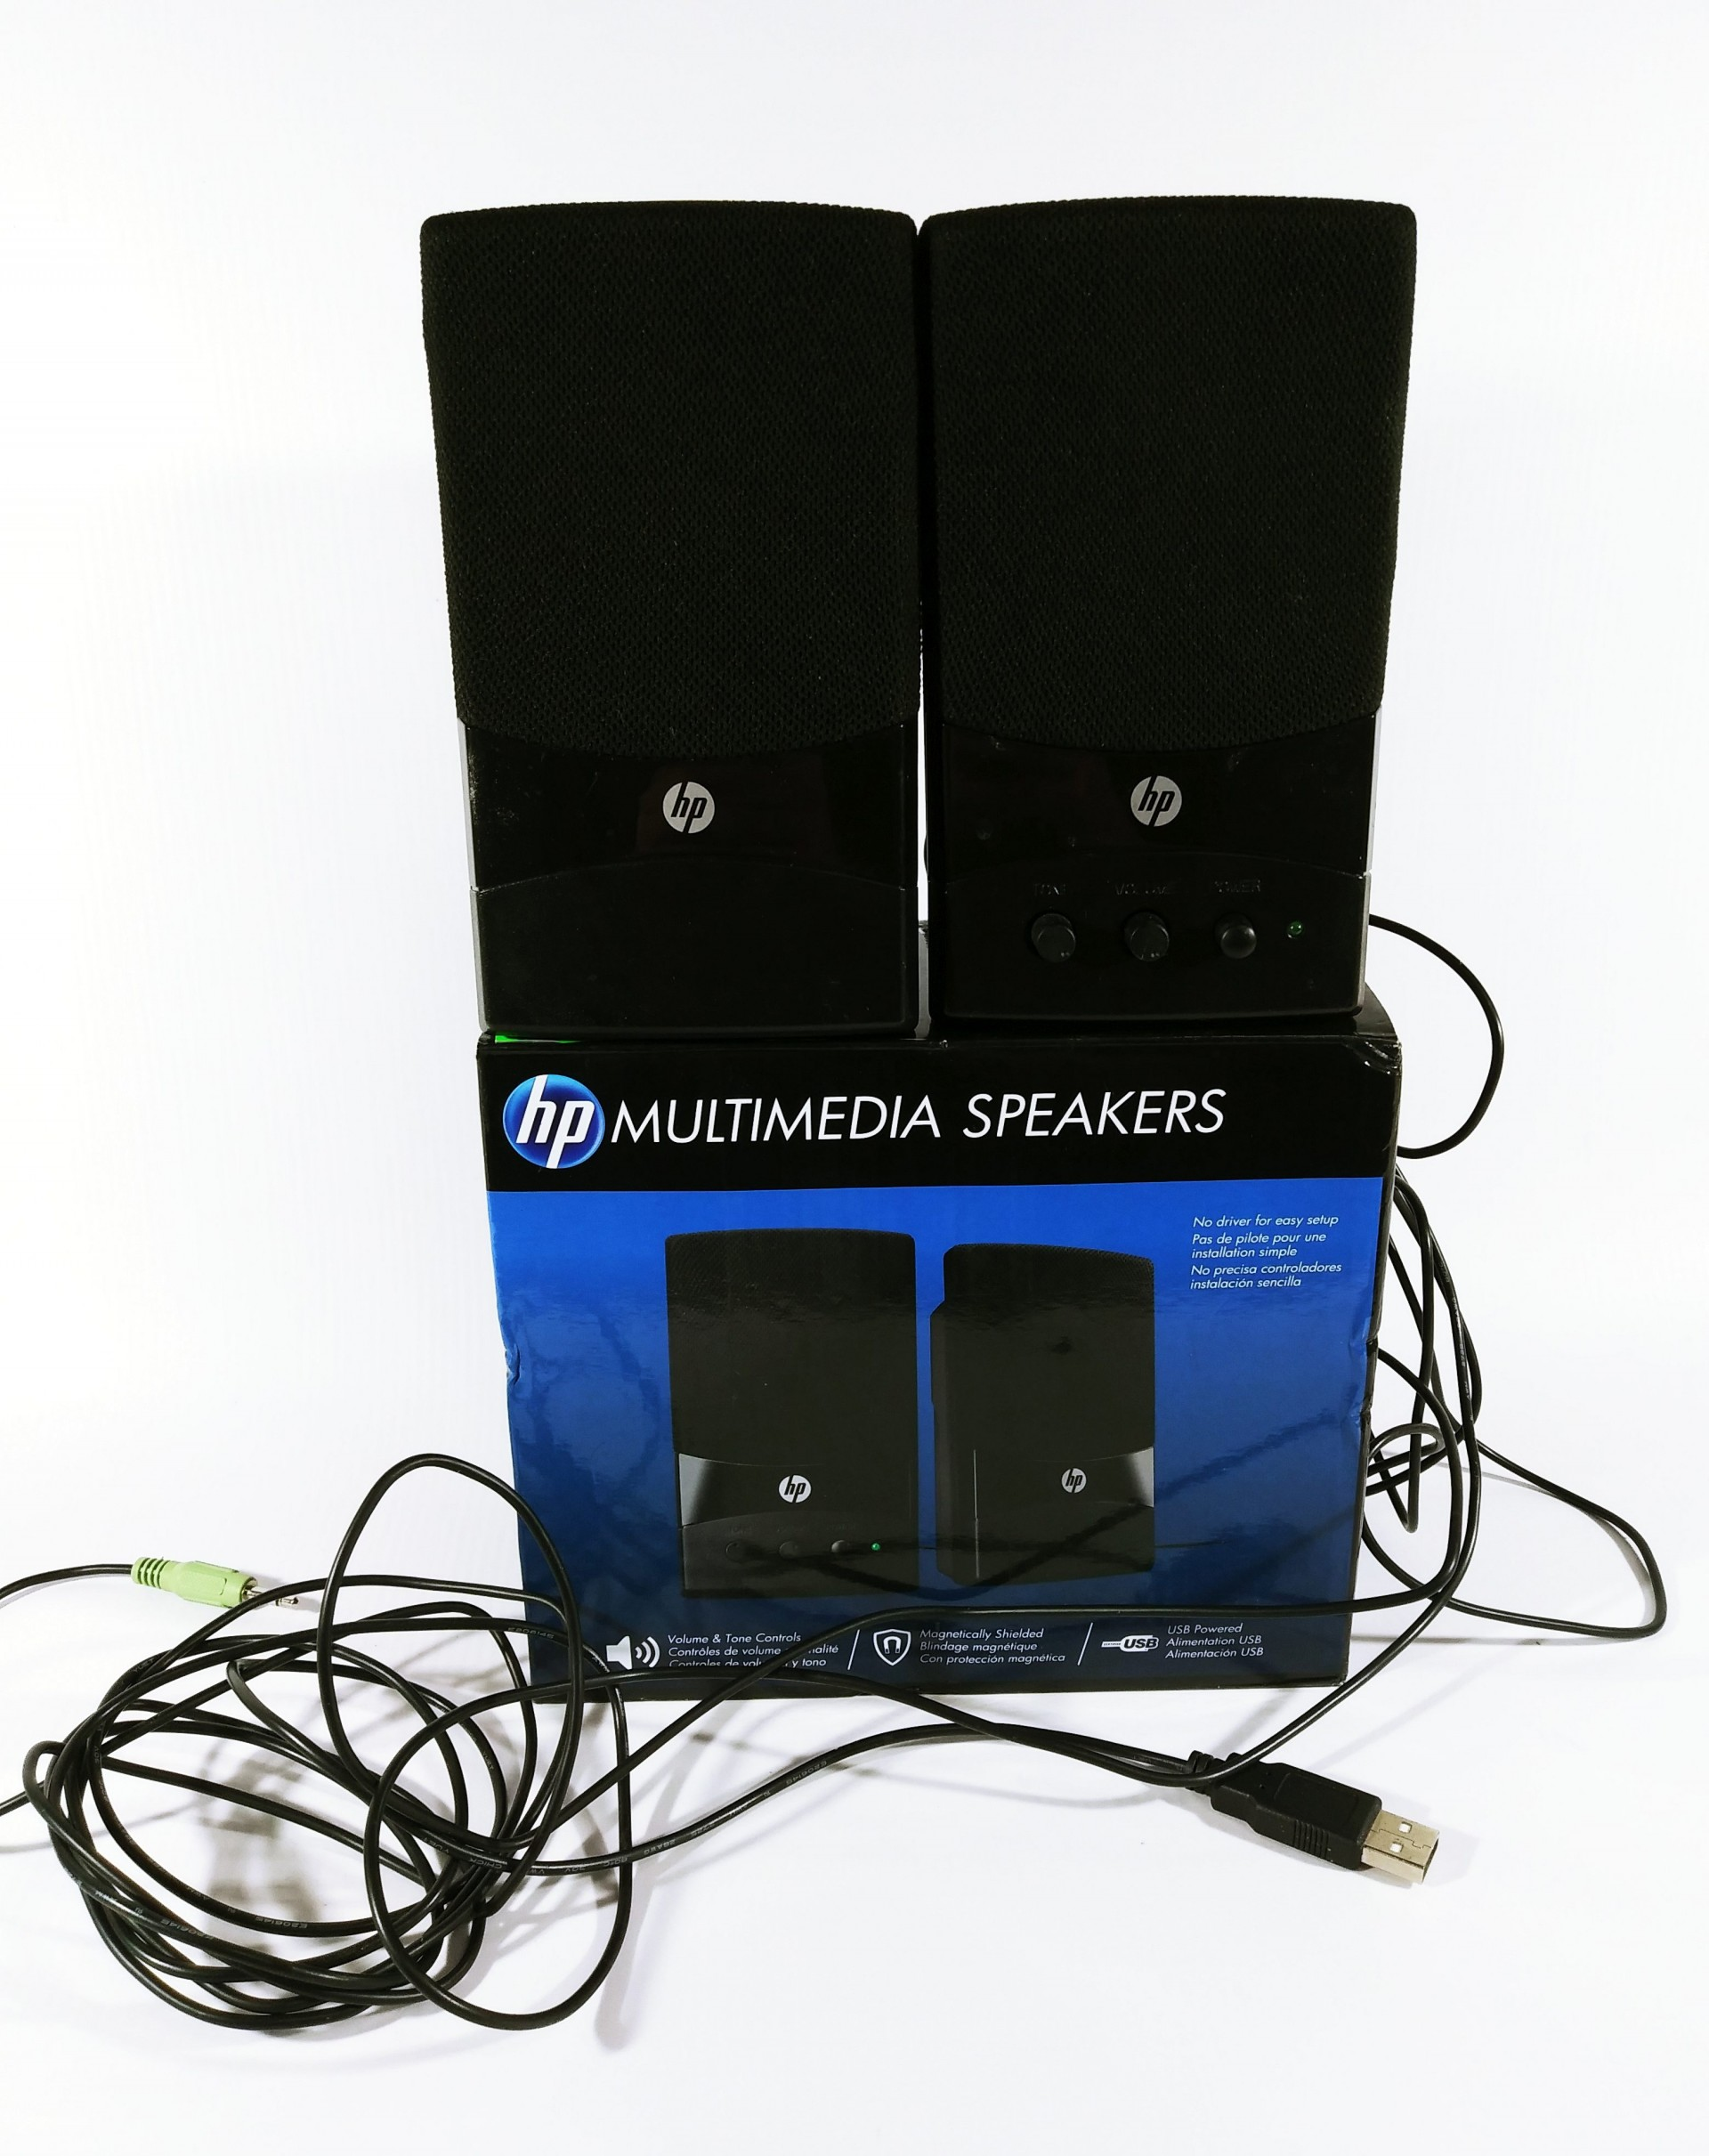 Głośniki HP Multimedia Speakers